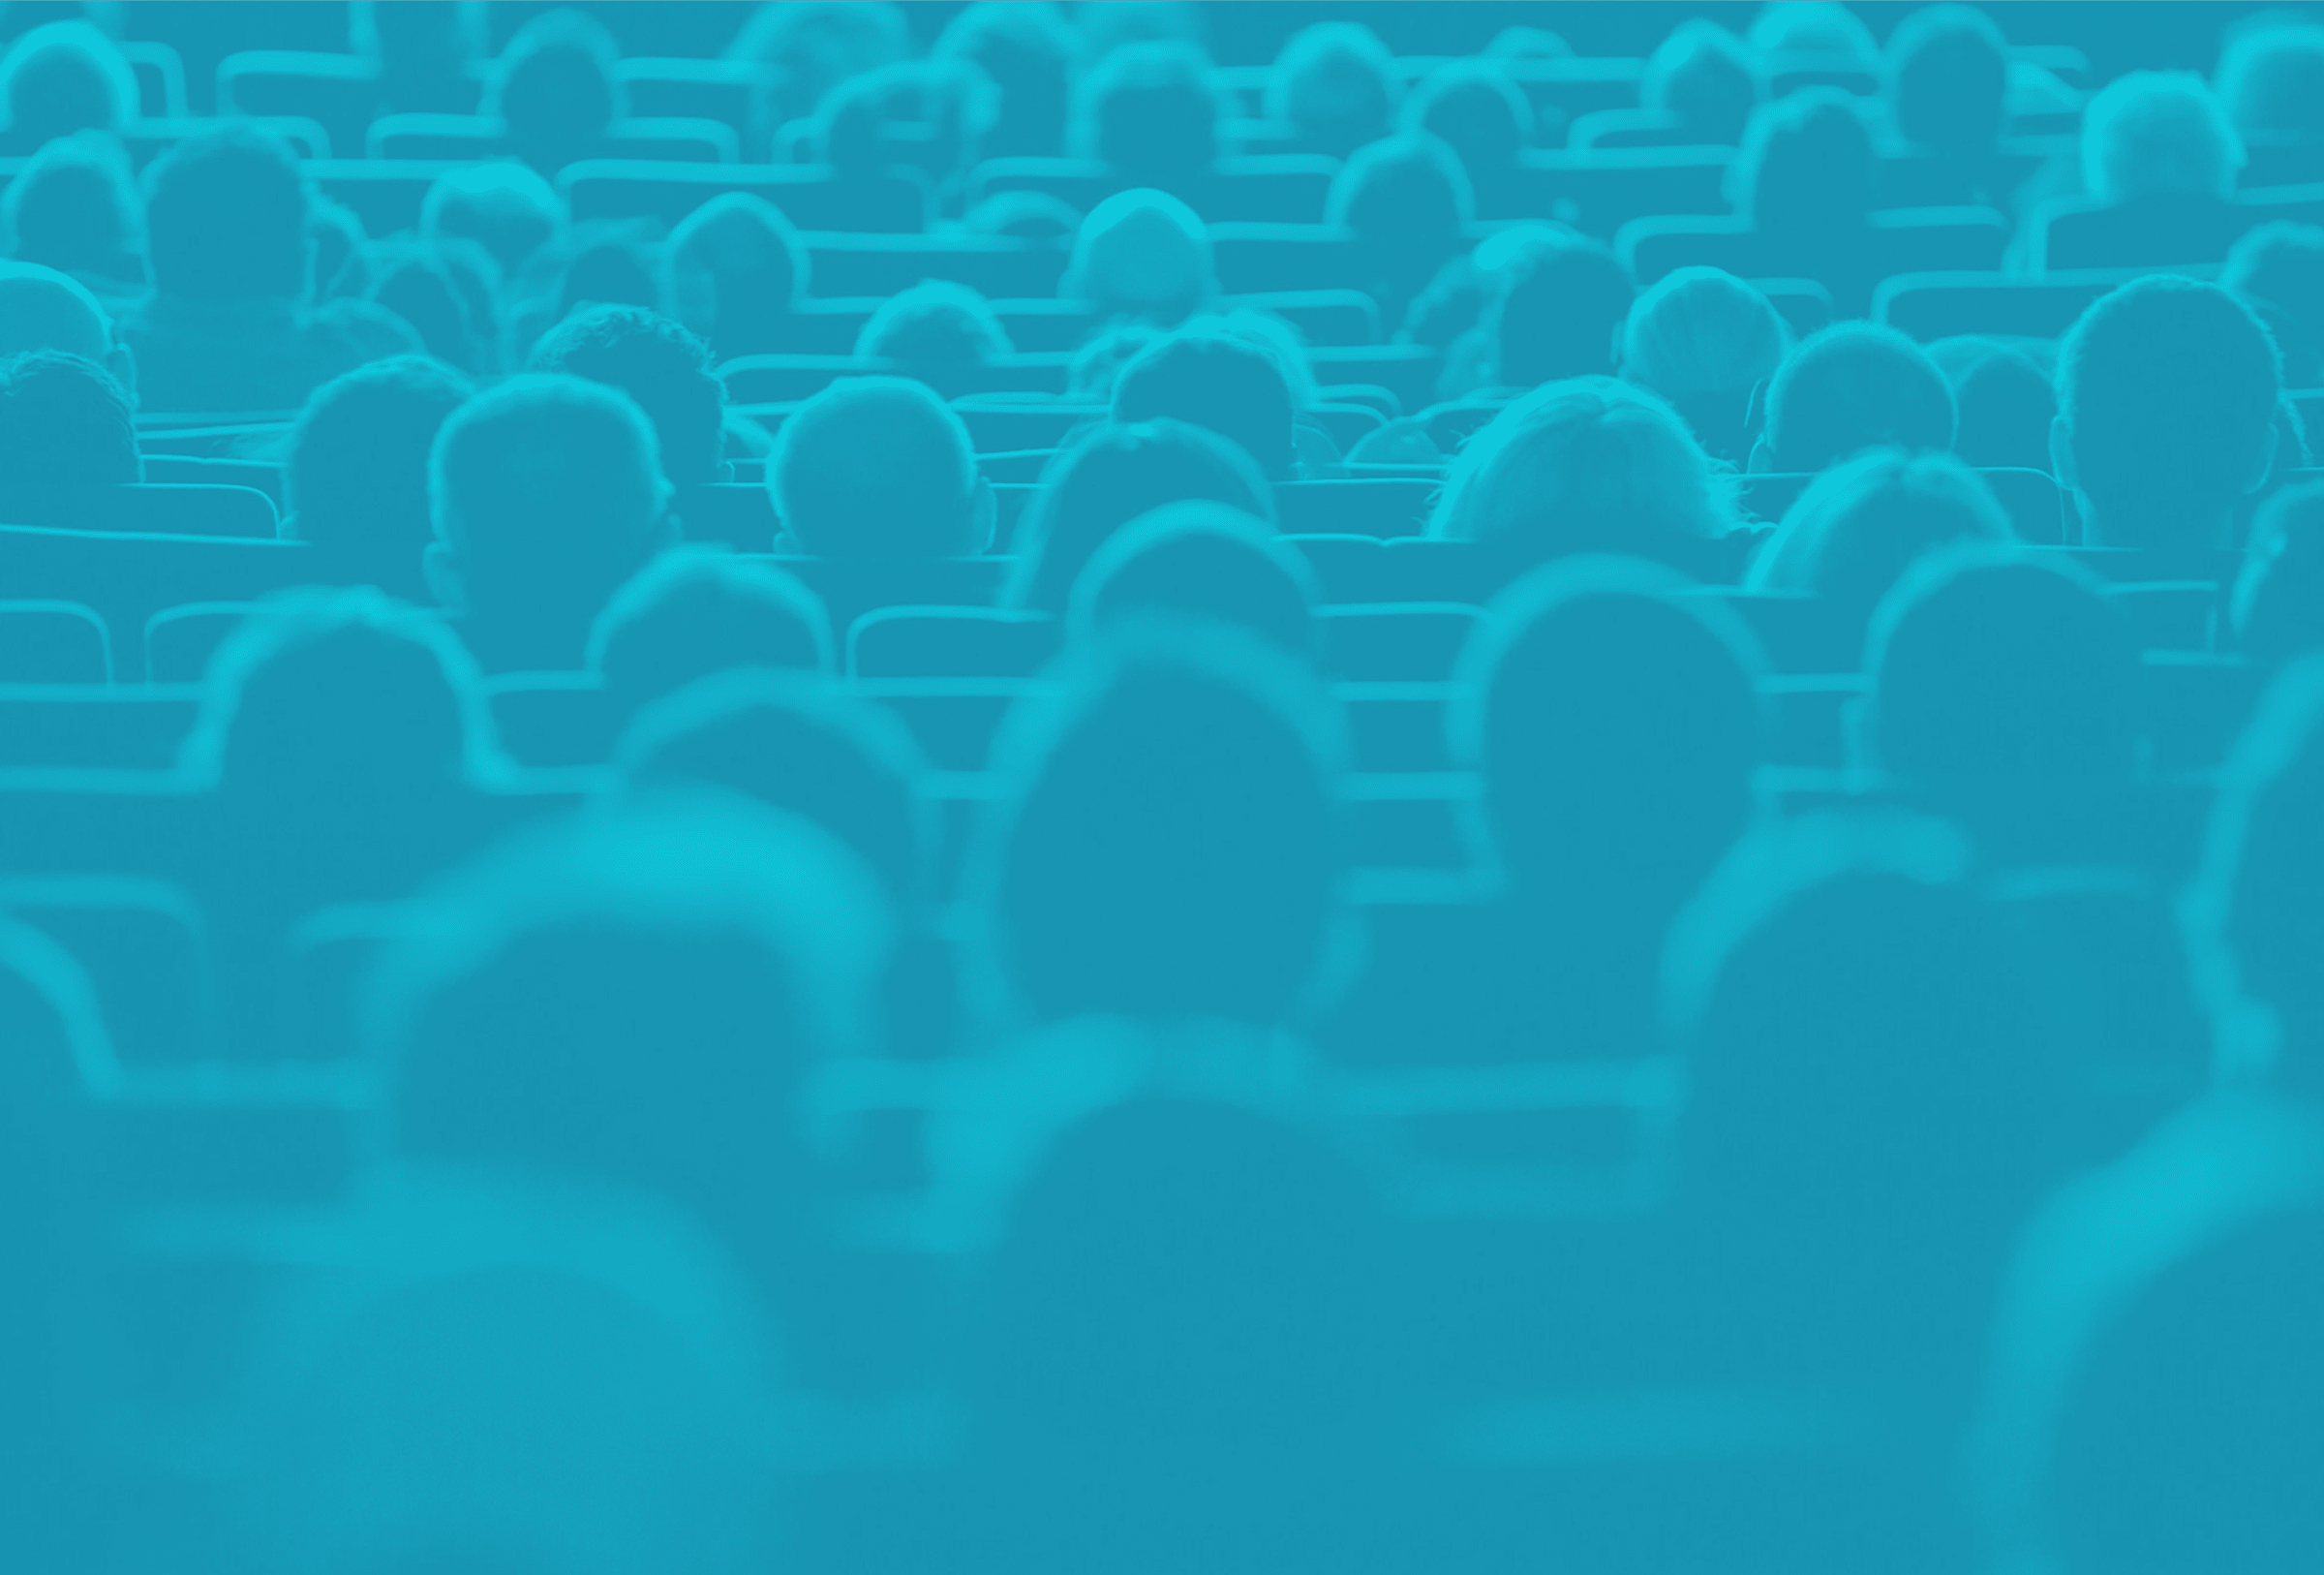 decorative image of heads in a crowded auditorium